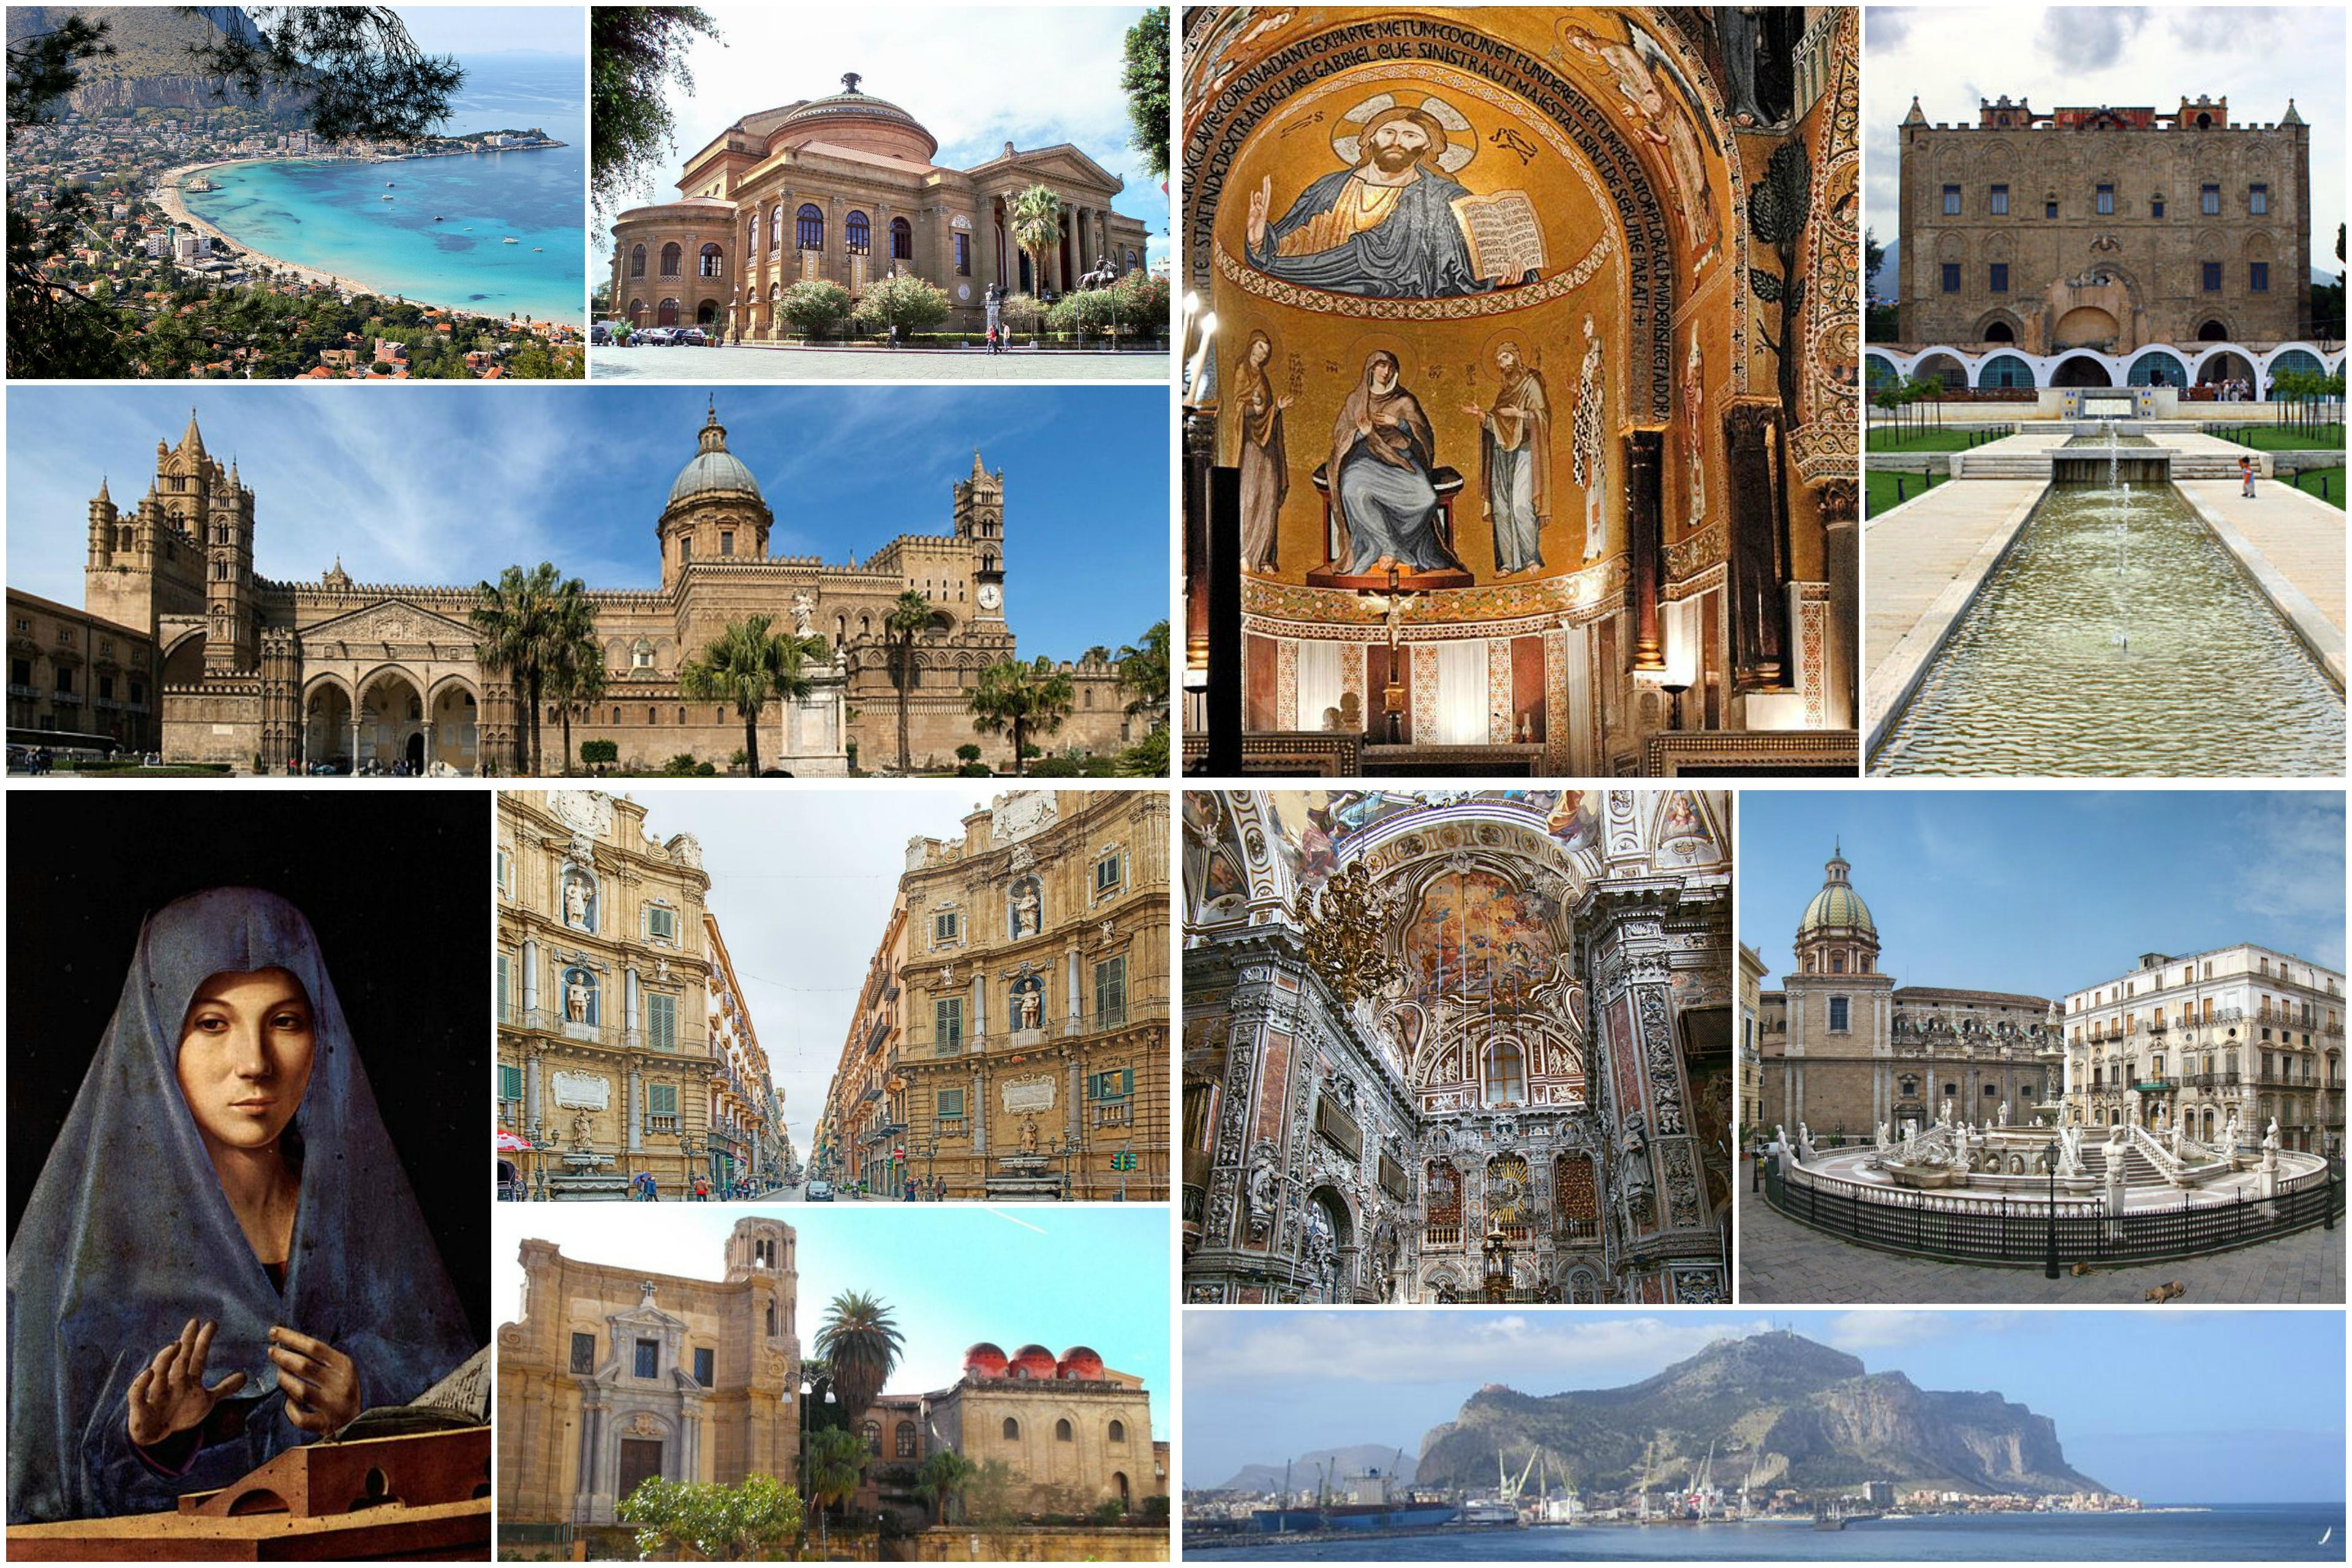 Palermo Photo Collage